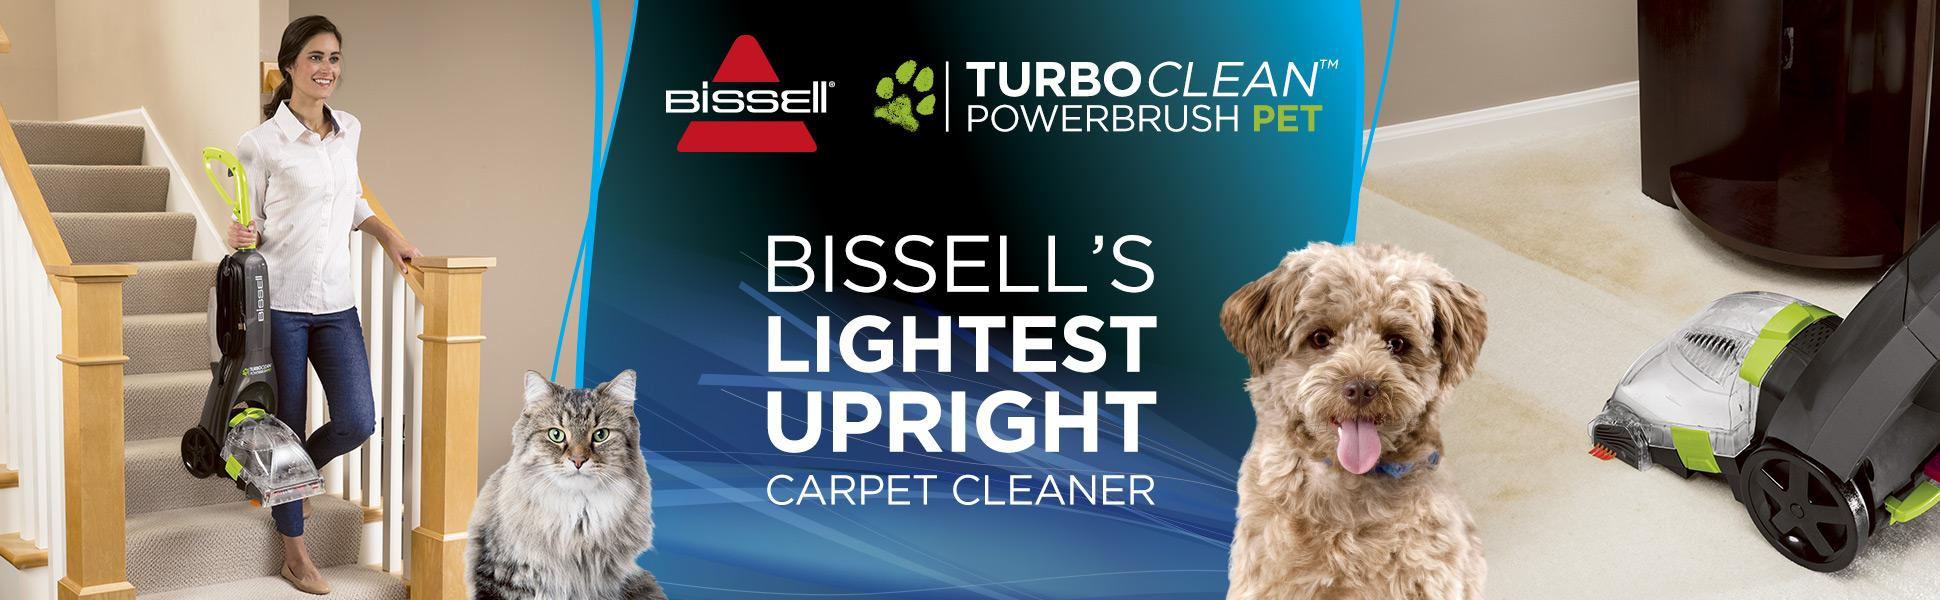 Amazon Com Bissell Turboclean Powerbrush Pet Upright